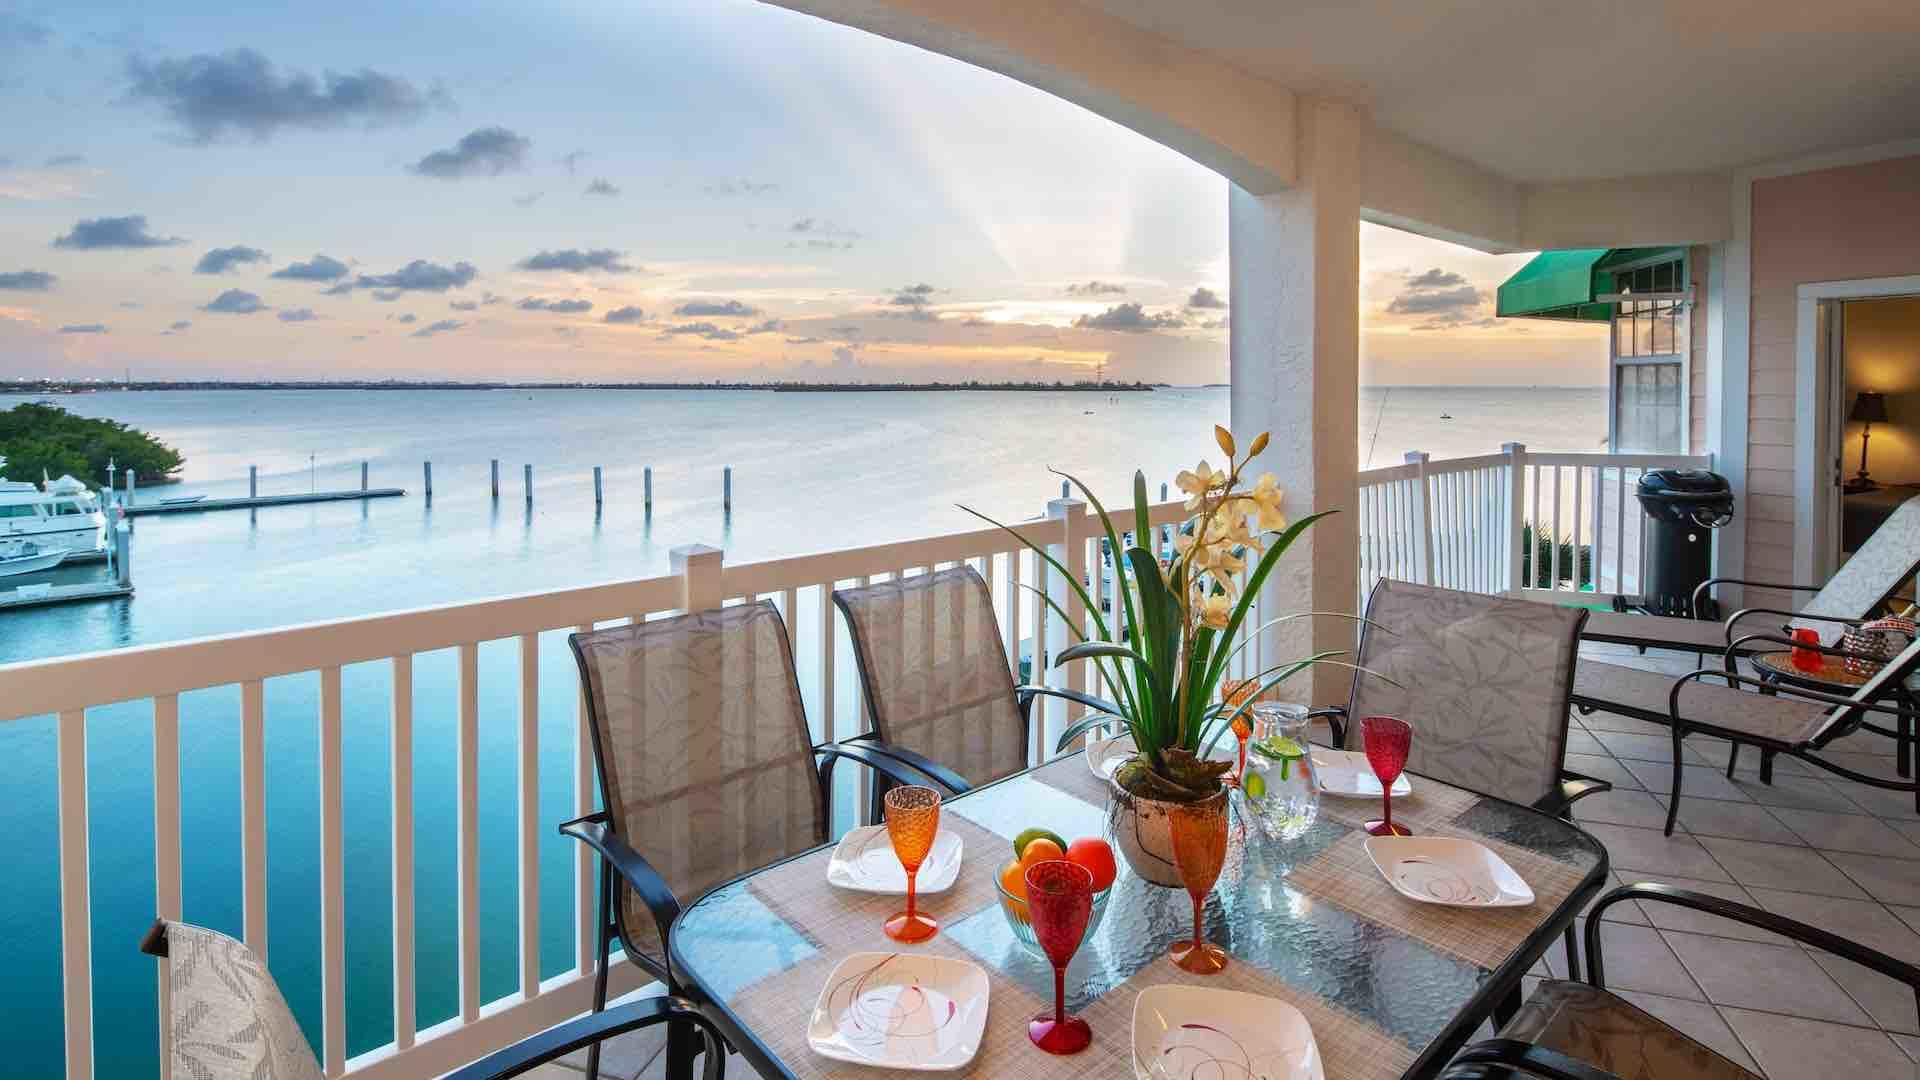 Enjoy an outdoor meal on the balcony using the dining set, with seating for six...